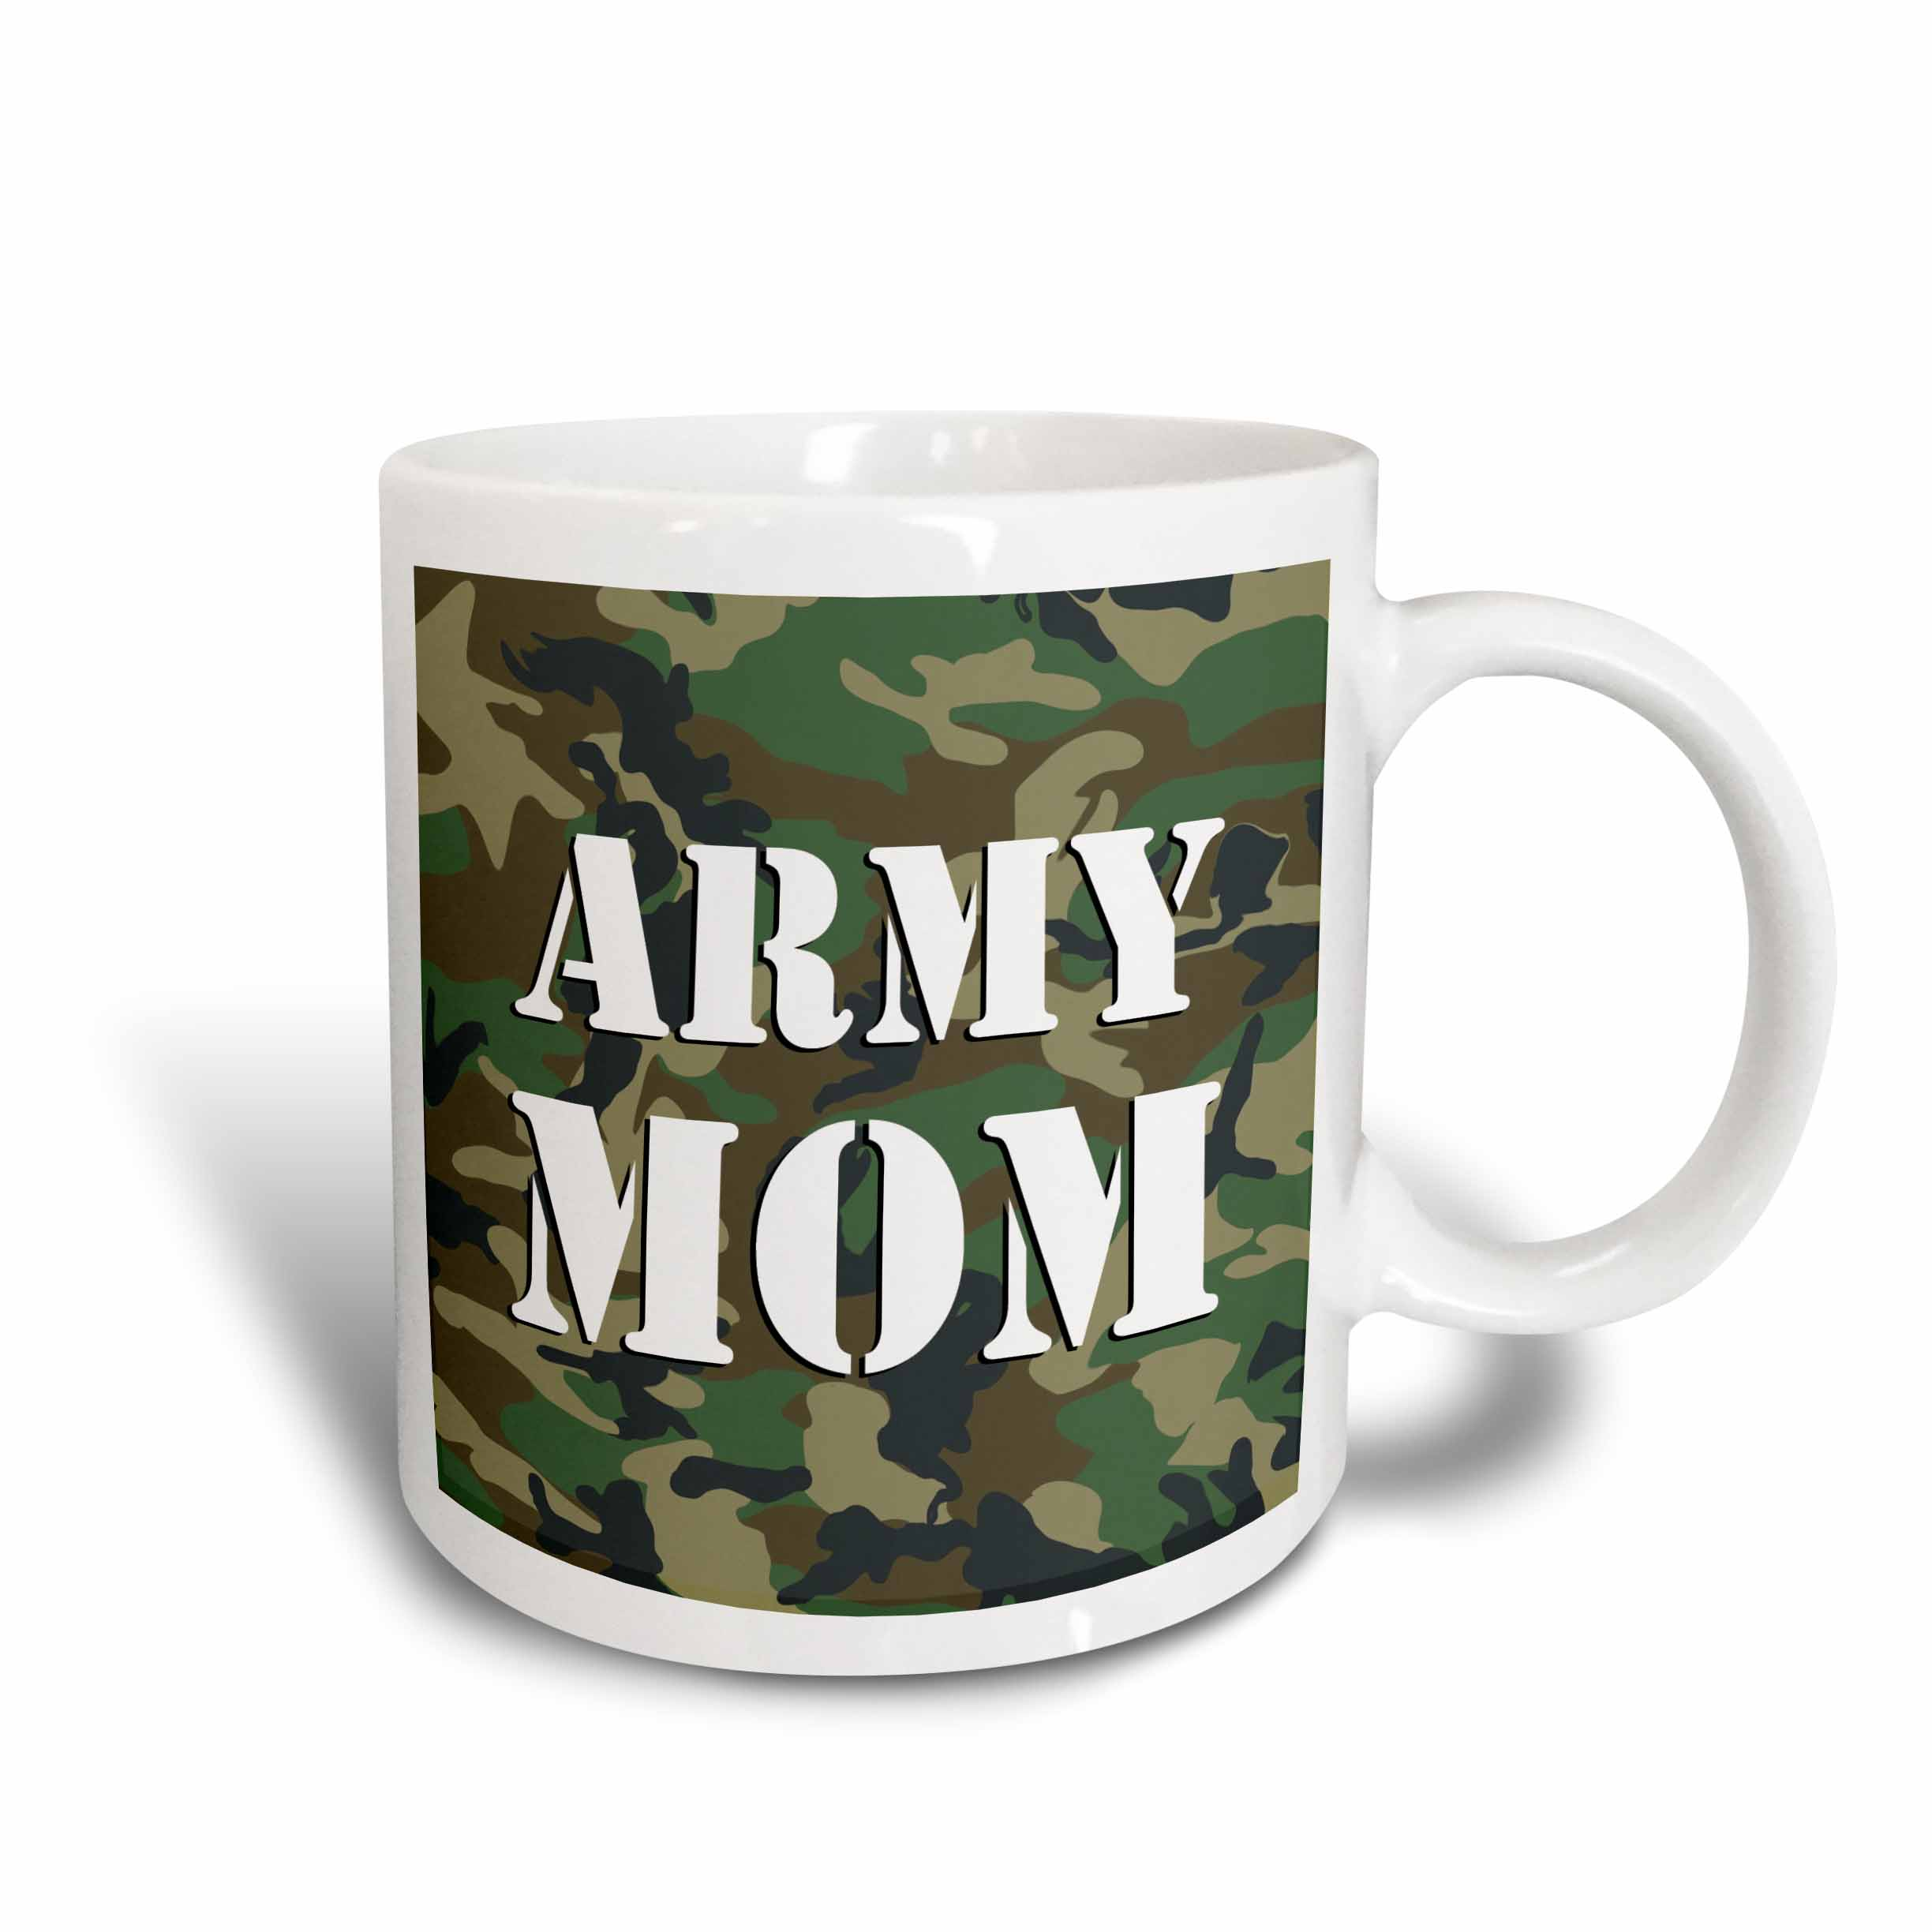 3d Rose 3drose Army Mom Green Camouflage, Ceramic Mug, 11 - ounce